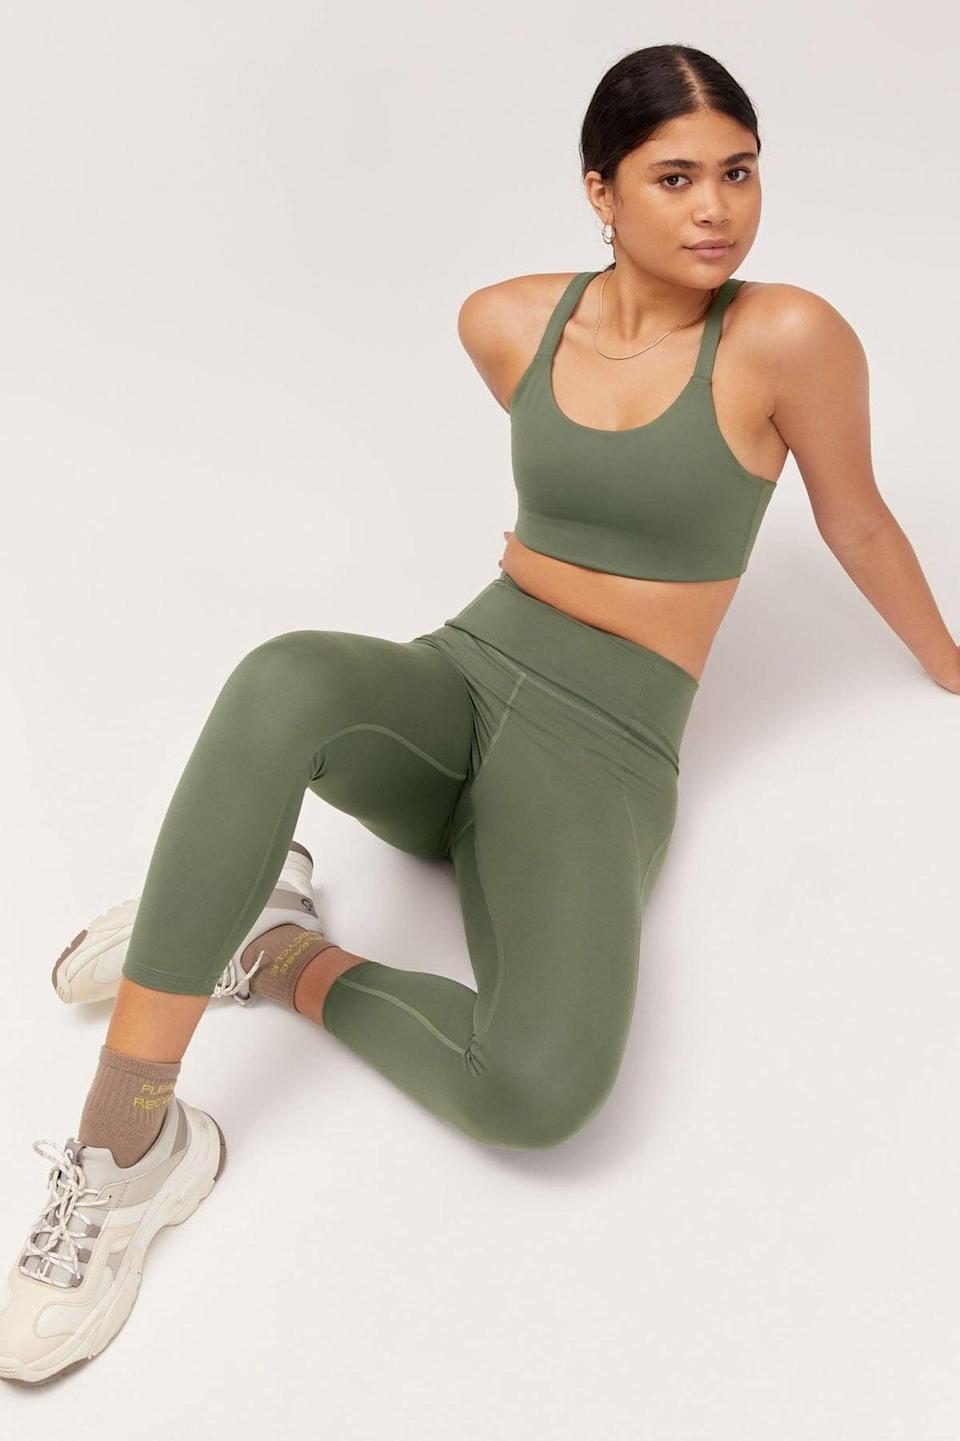 <p>This <span>Girlfriend Collective Compressive High-Rise Legging</span> ($68) and <span>Paloma Bra</span> ($38) makes for the perfect matching set.</p>